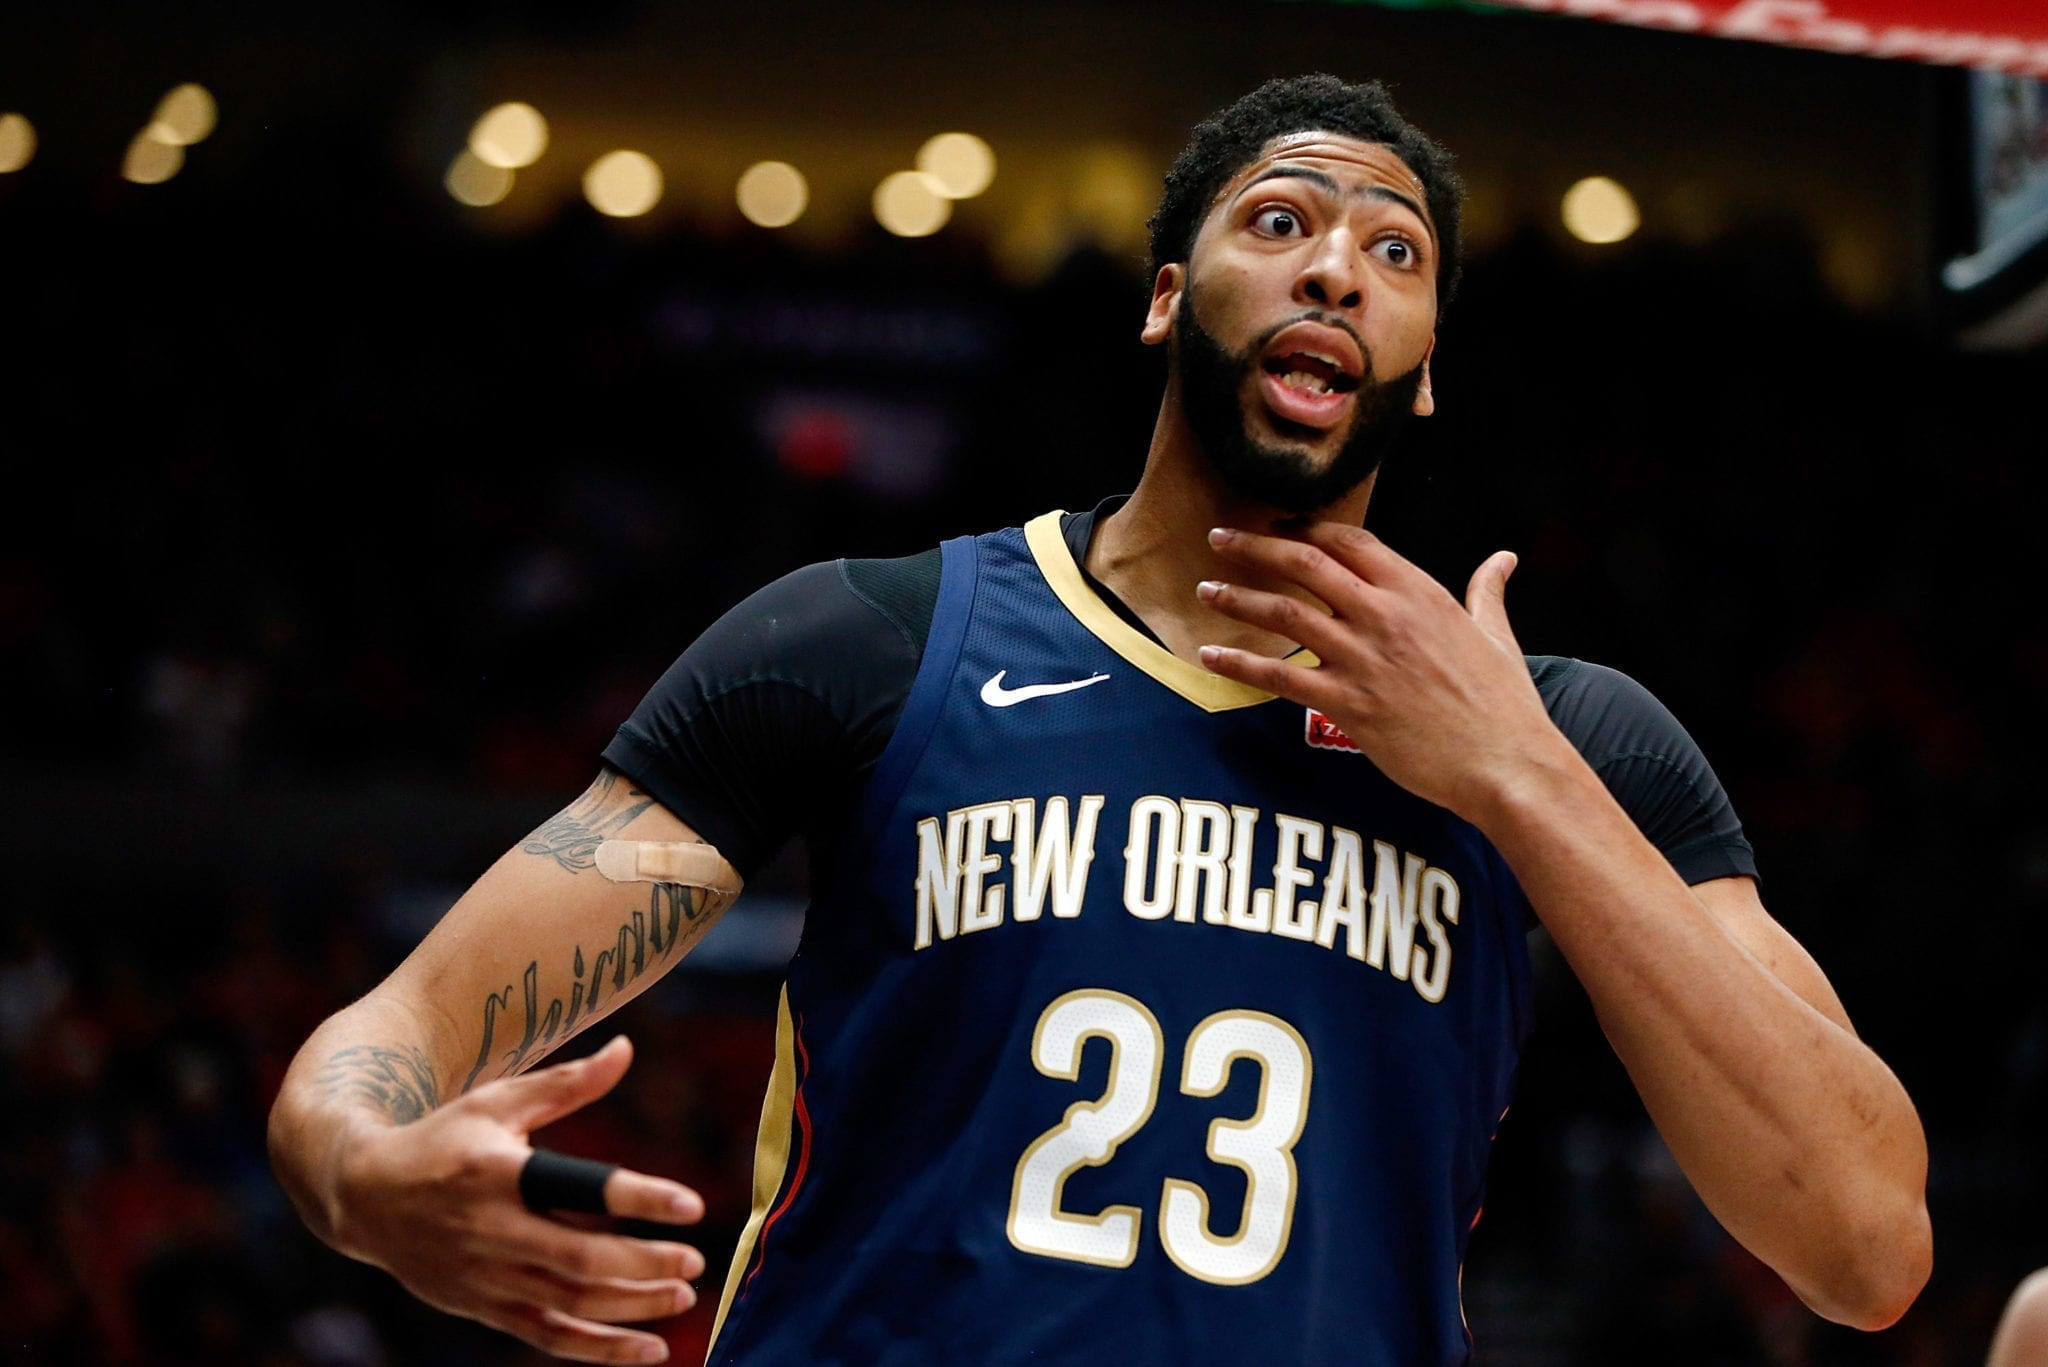 PORTLAND, OR - APRIL 17: Anthony Davis #23 of the New Orleans Pelicans complains to the official against the Portland Trail Blazers during Game One of the Western Conference Quarterfinals during the 2018 NBA Playoffs at Moda Center on April 17, 2018 in Portland, Oregon. NOTE TO USER: User expressly acknowledges and agrees that, by downloading and or using this photograph, User is consenting to the terms and conditions of the Getty Images License Agreement. (Photo by Jonathan Ferrey/Getty Images)